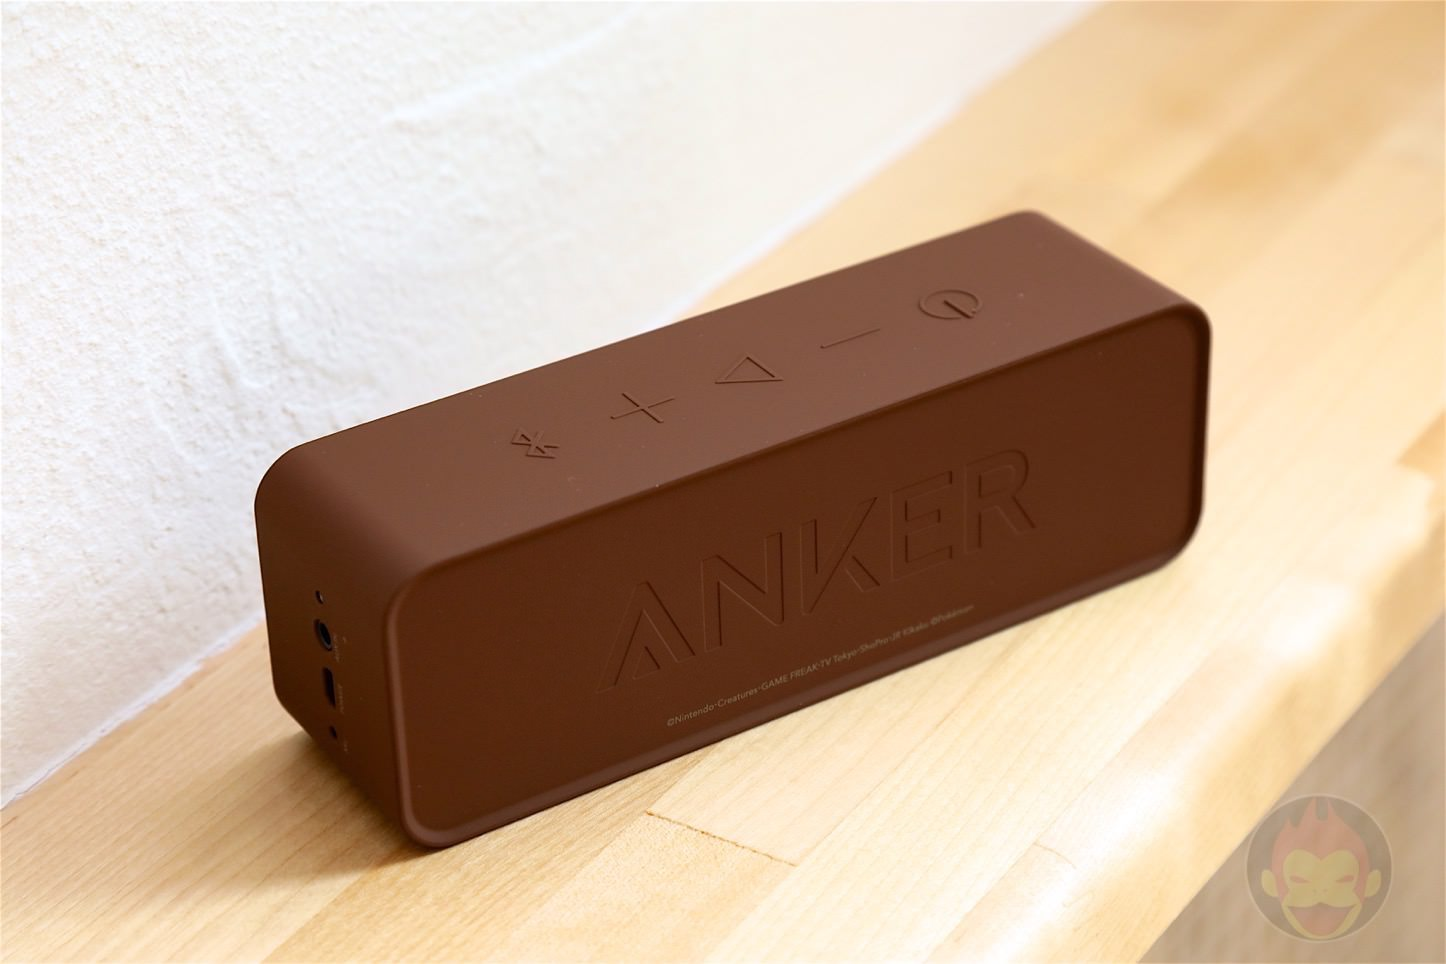 Anker SoundCore Pokemon version